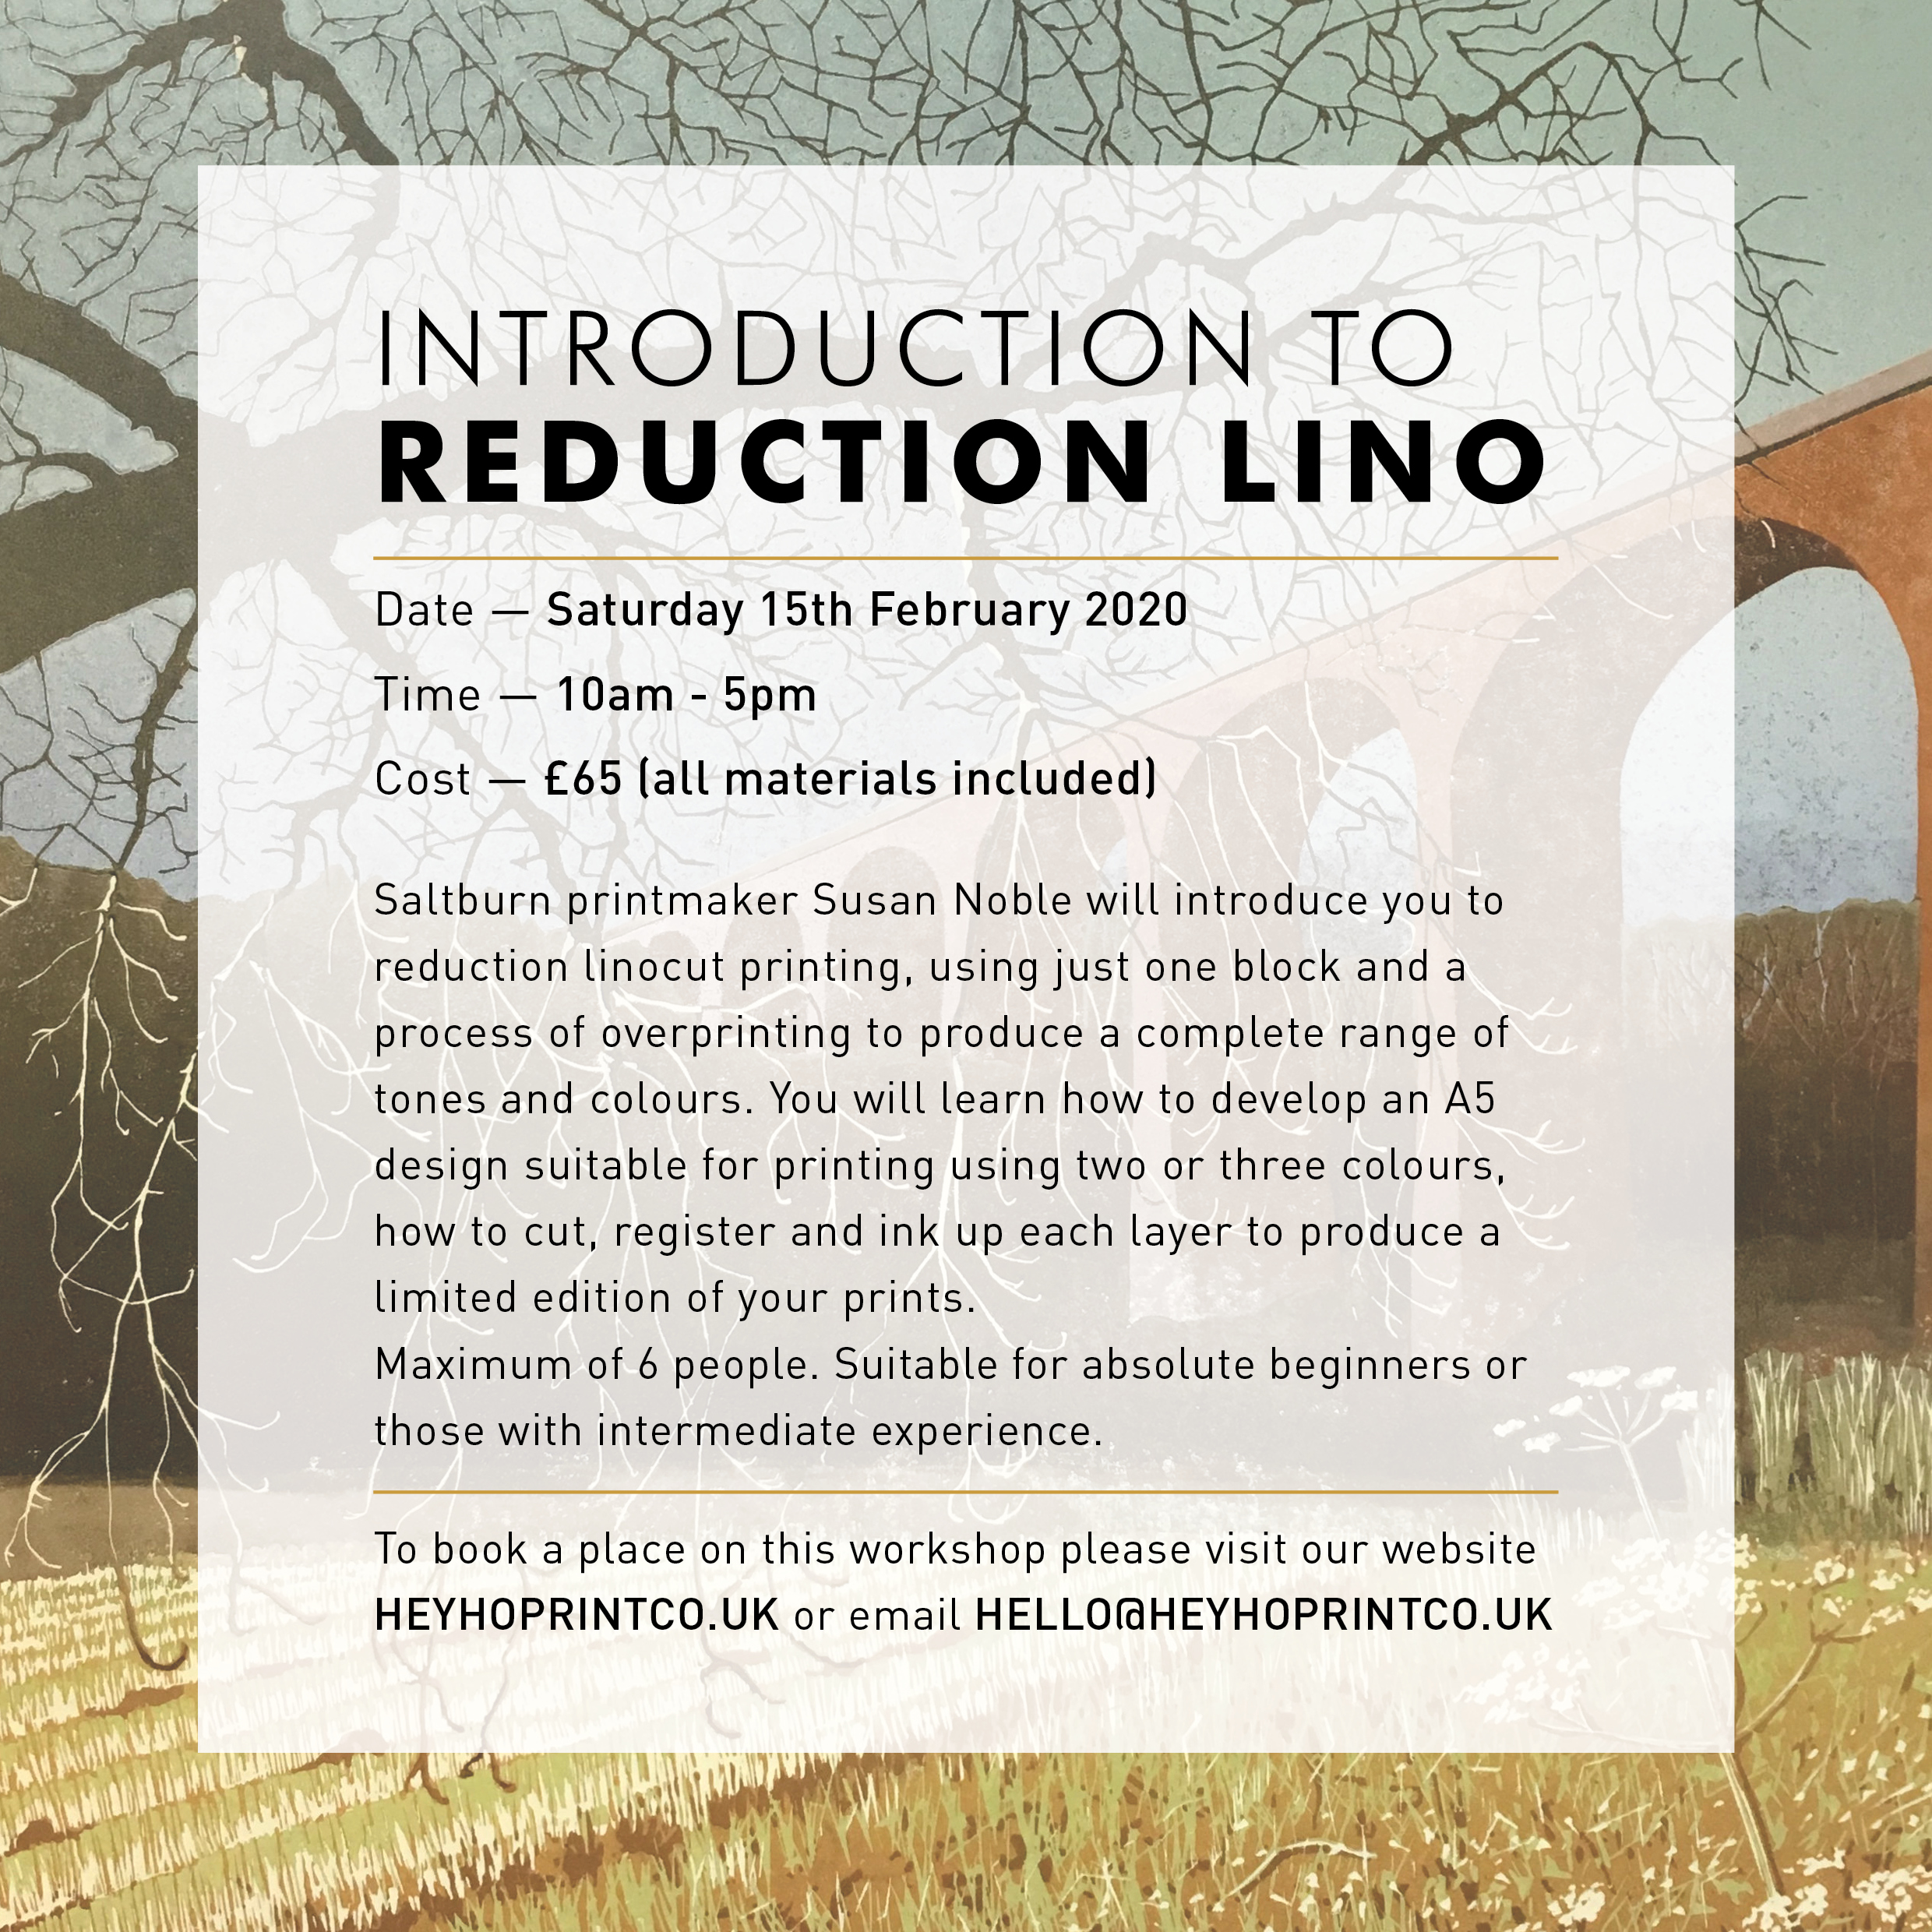 Introduction to Reduction Linocut - One Day February 15th 2020